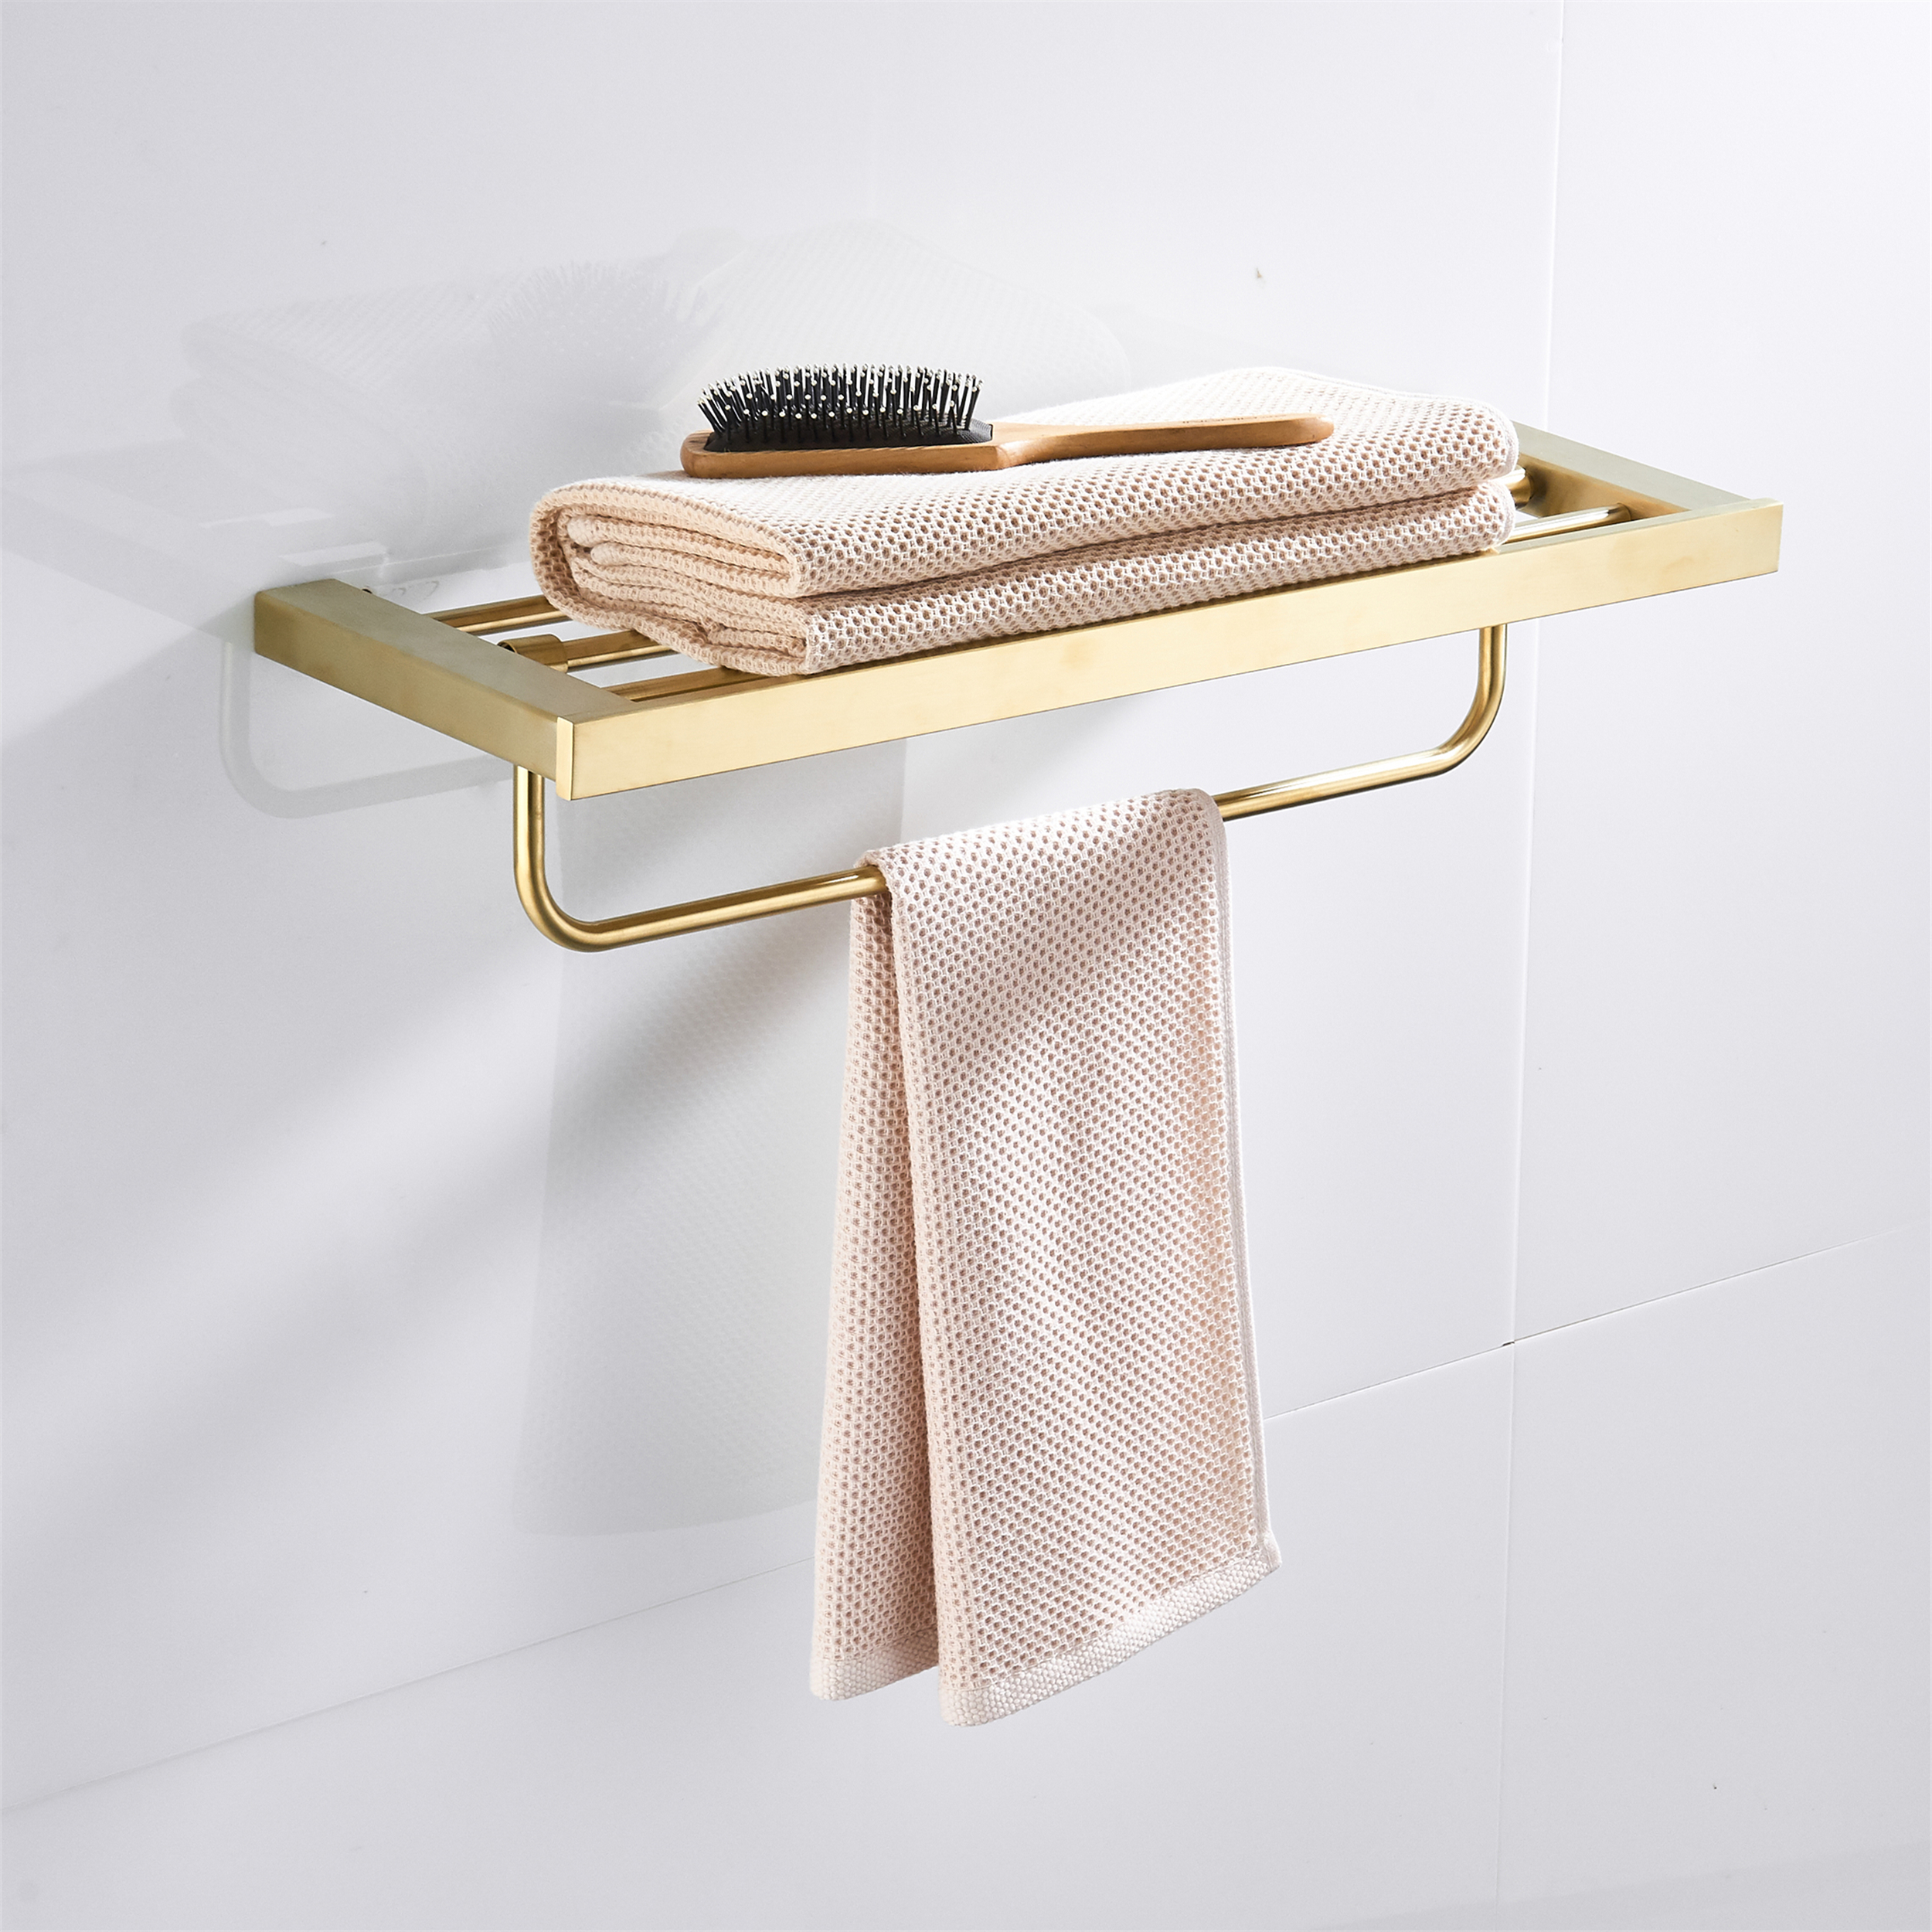 SUS304 Stainless Steel Wall Mounted Brushed Gold Towel Rack Towel Hanger With Towel Bars Bathroom Hardware Accessory HolderSUS304 Stainless Steel Wall Mounted Brushed Gold Towel Rack Towel Hanger With Towel Bars Bathroom Hardware Accessory Holder